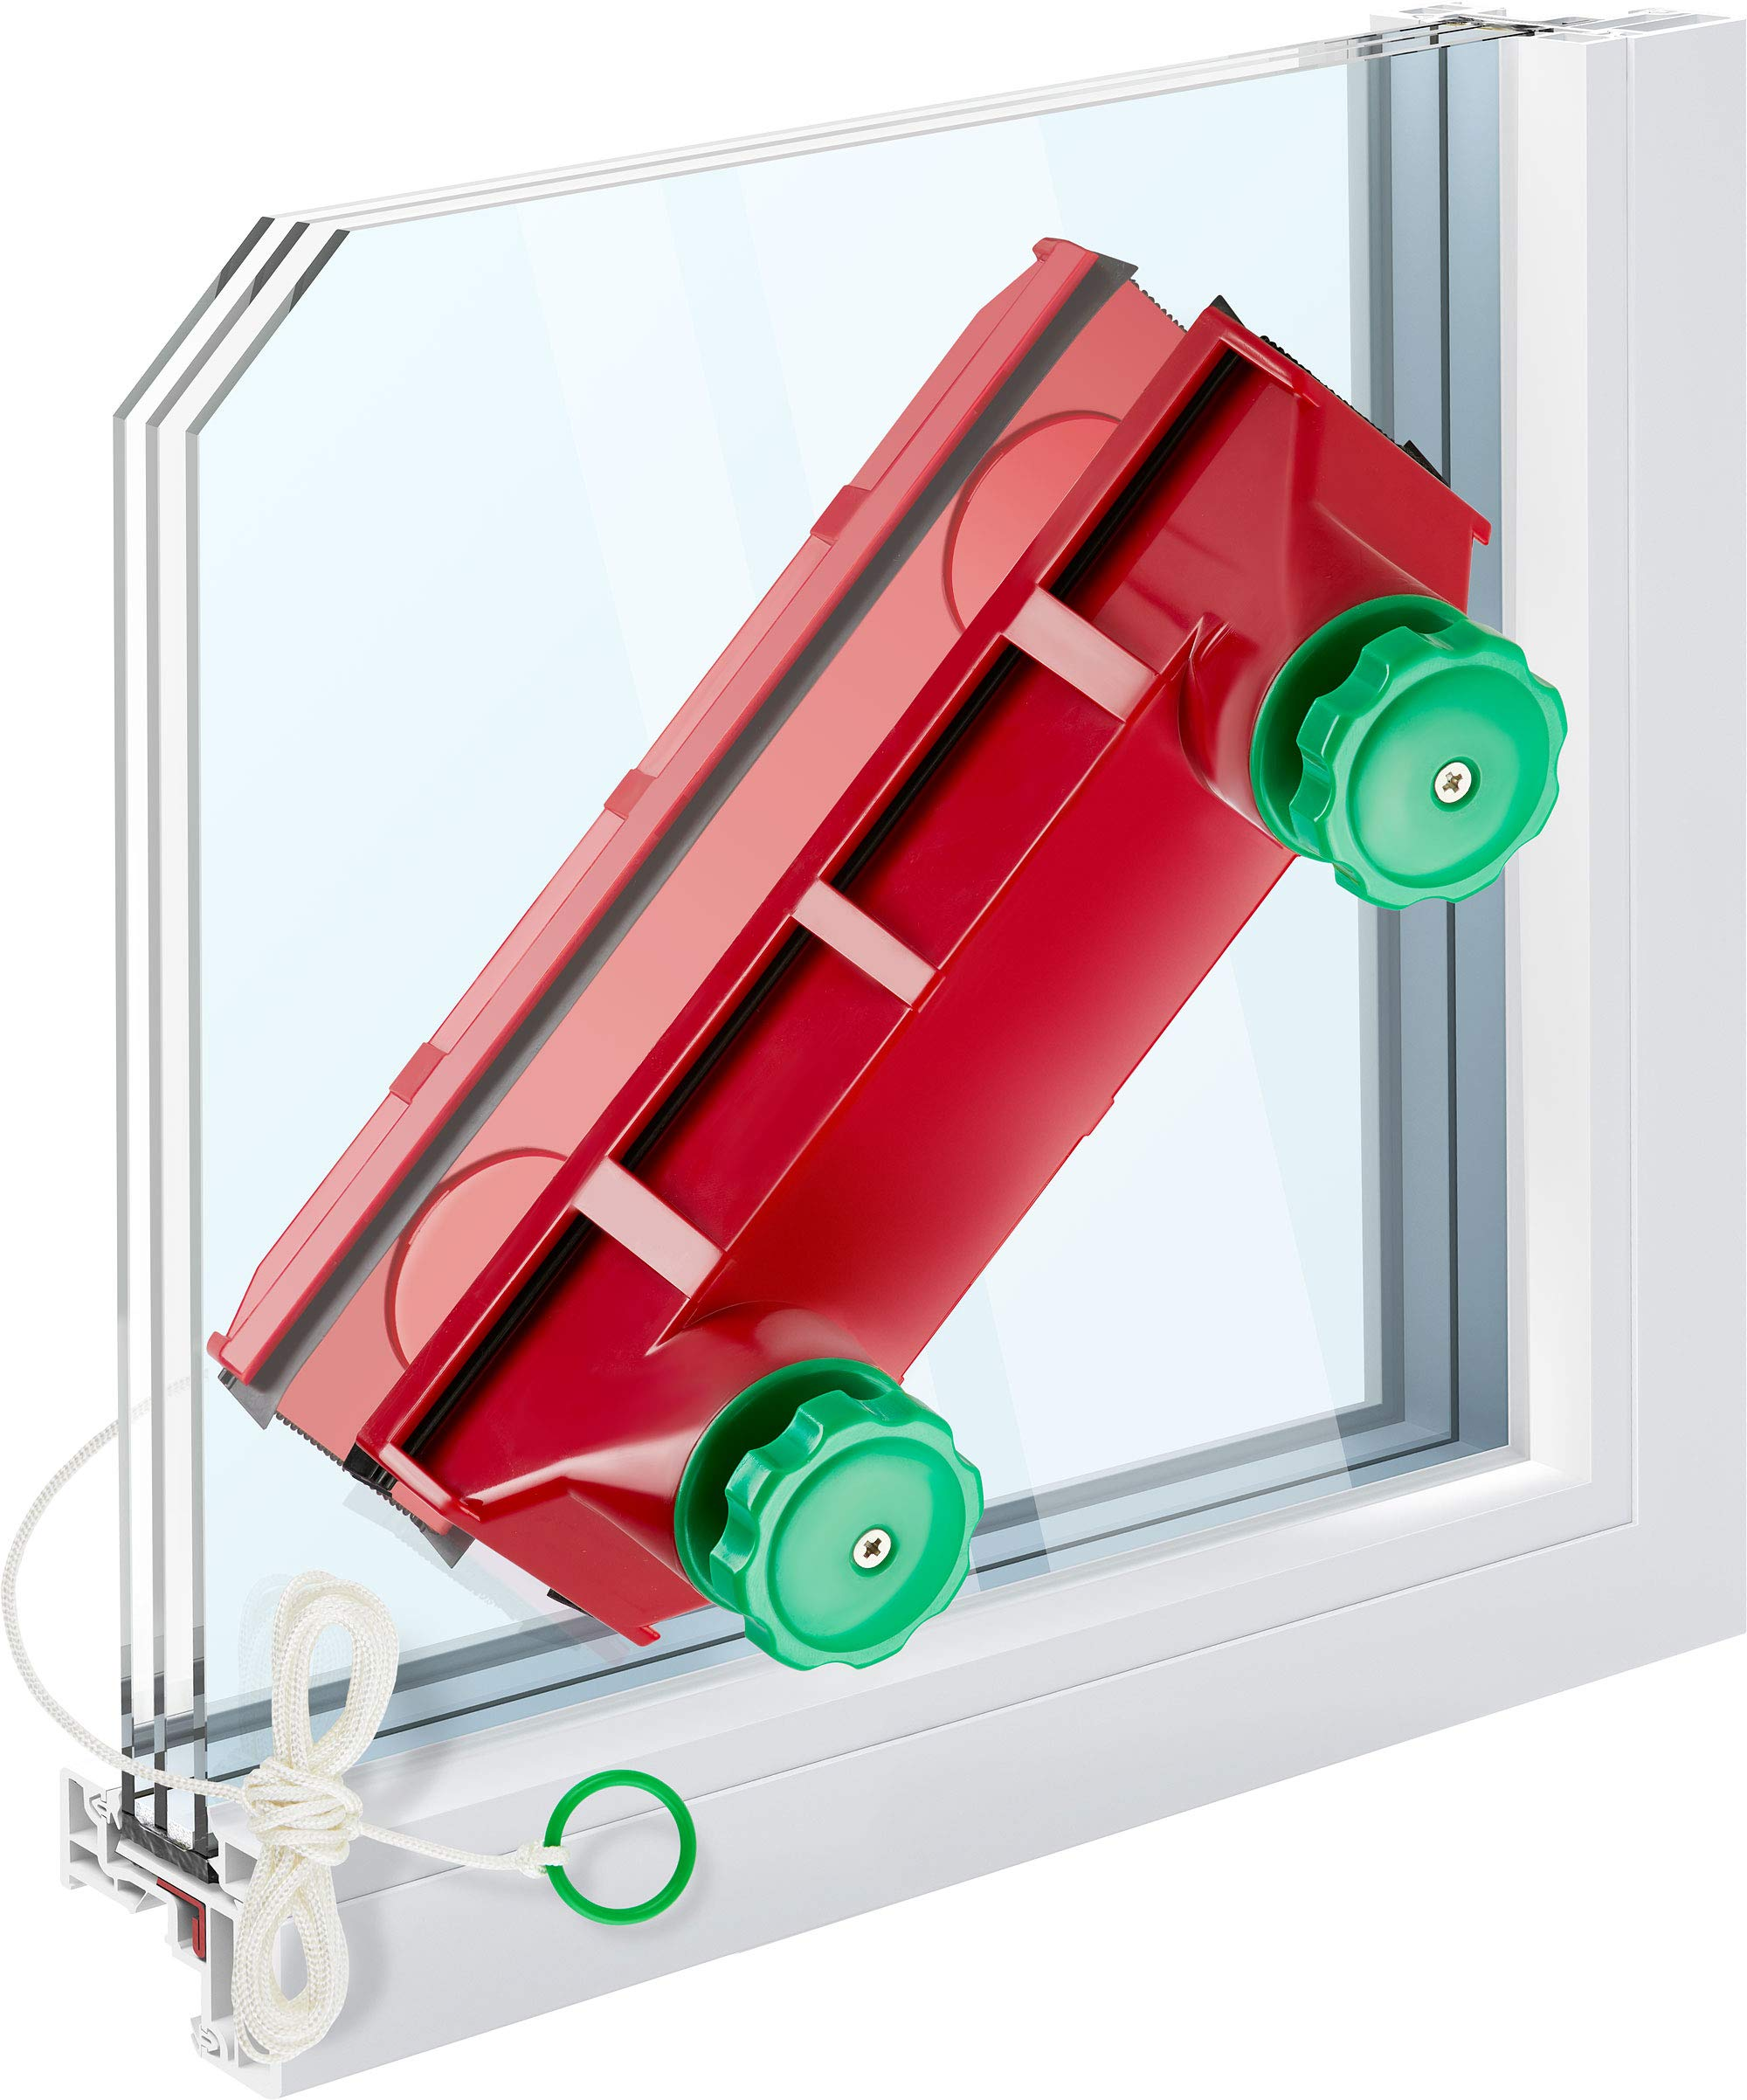 Tyroler Bright Tools Magnetic Window Cleaner (The Glider D-4) Indoor and Outdoor Glass Pane Cleaning | Single, Double, or Tripled Glazed 0.08''-1.6'' | Adjustable Magnet Force